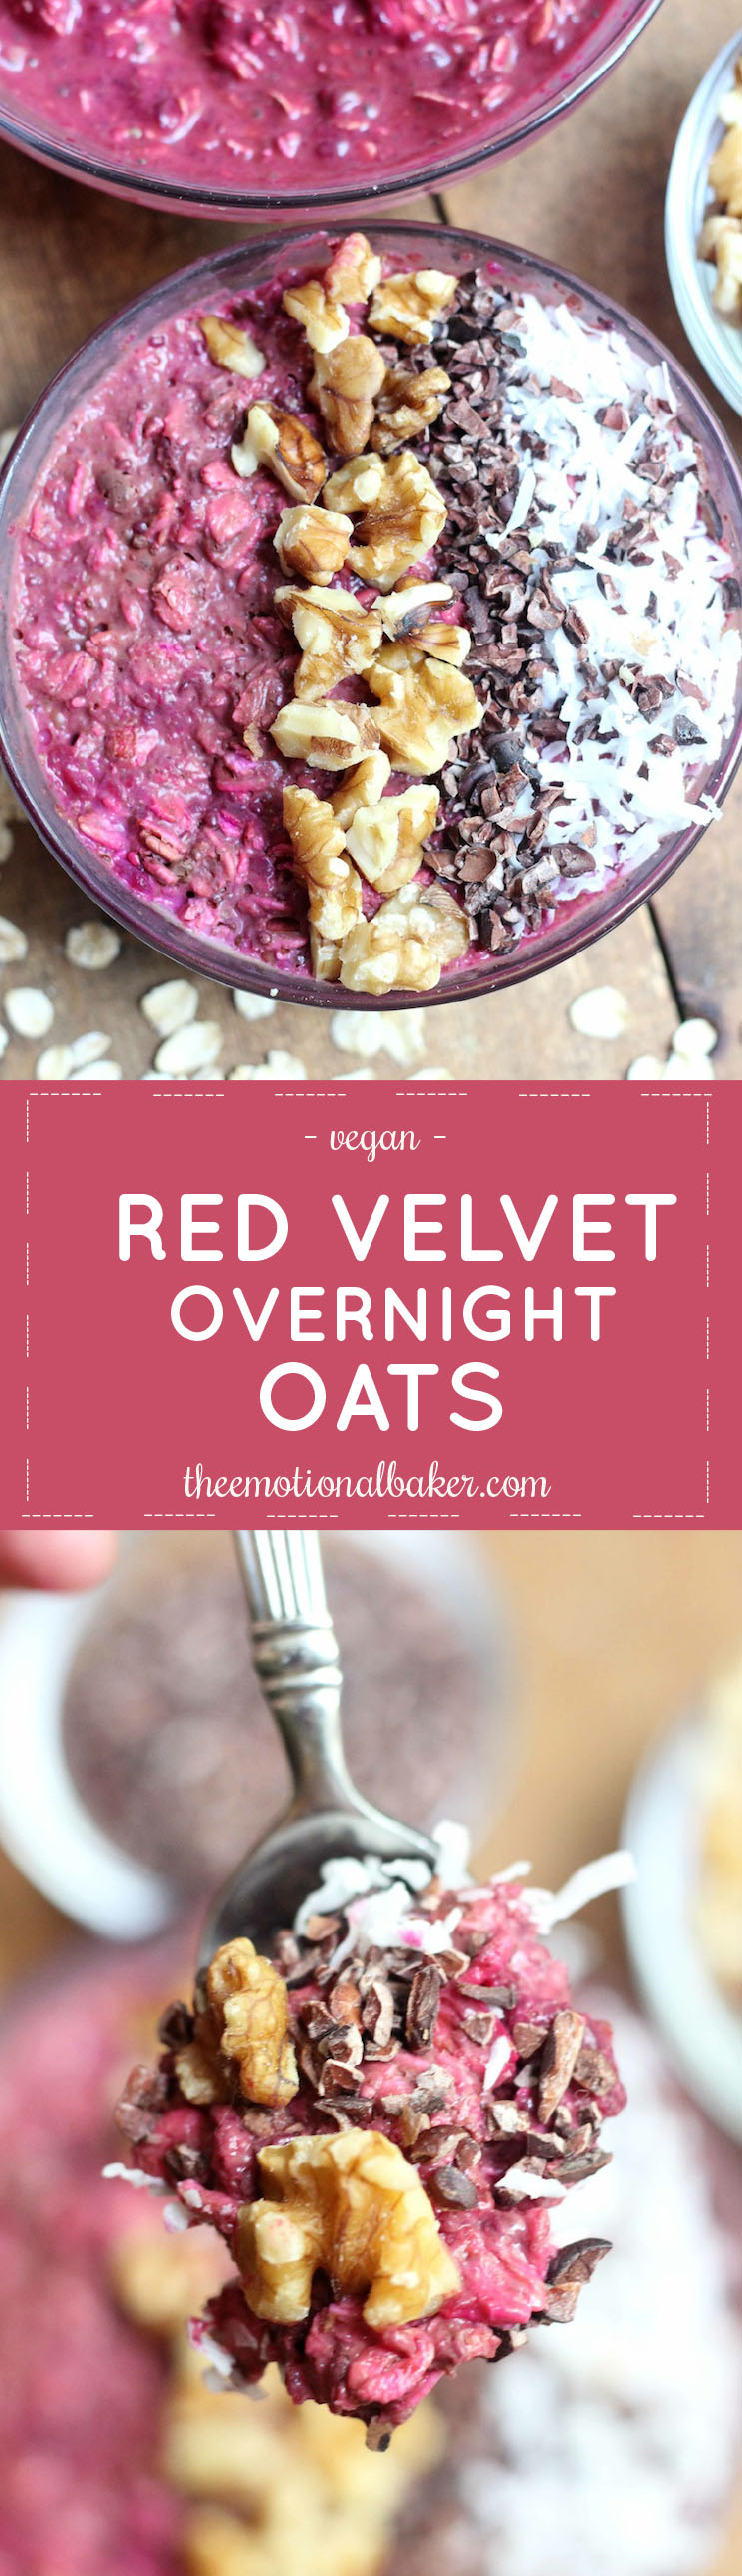 Start your day with these easy and nutritious Red Velvet Overnight Oats.